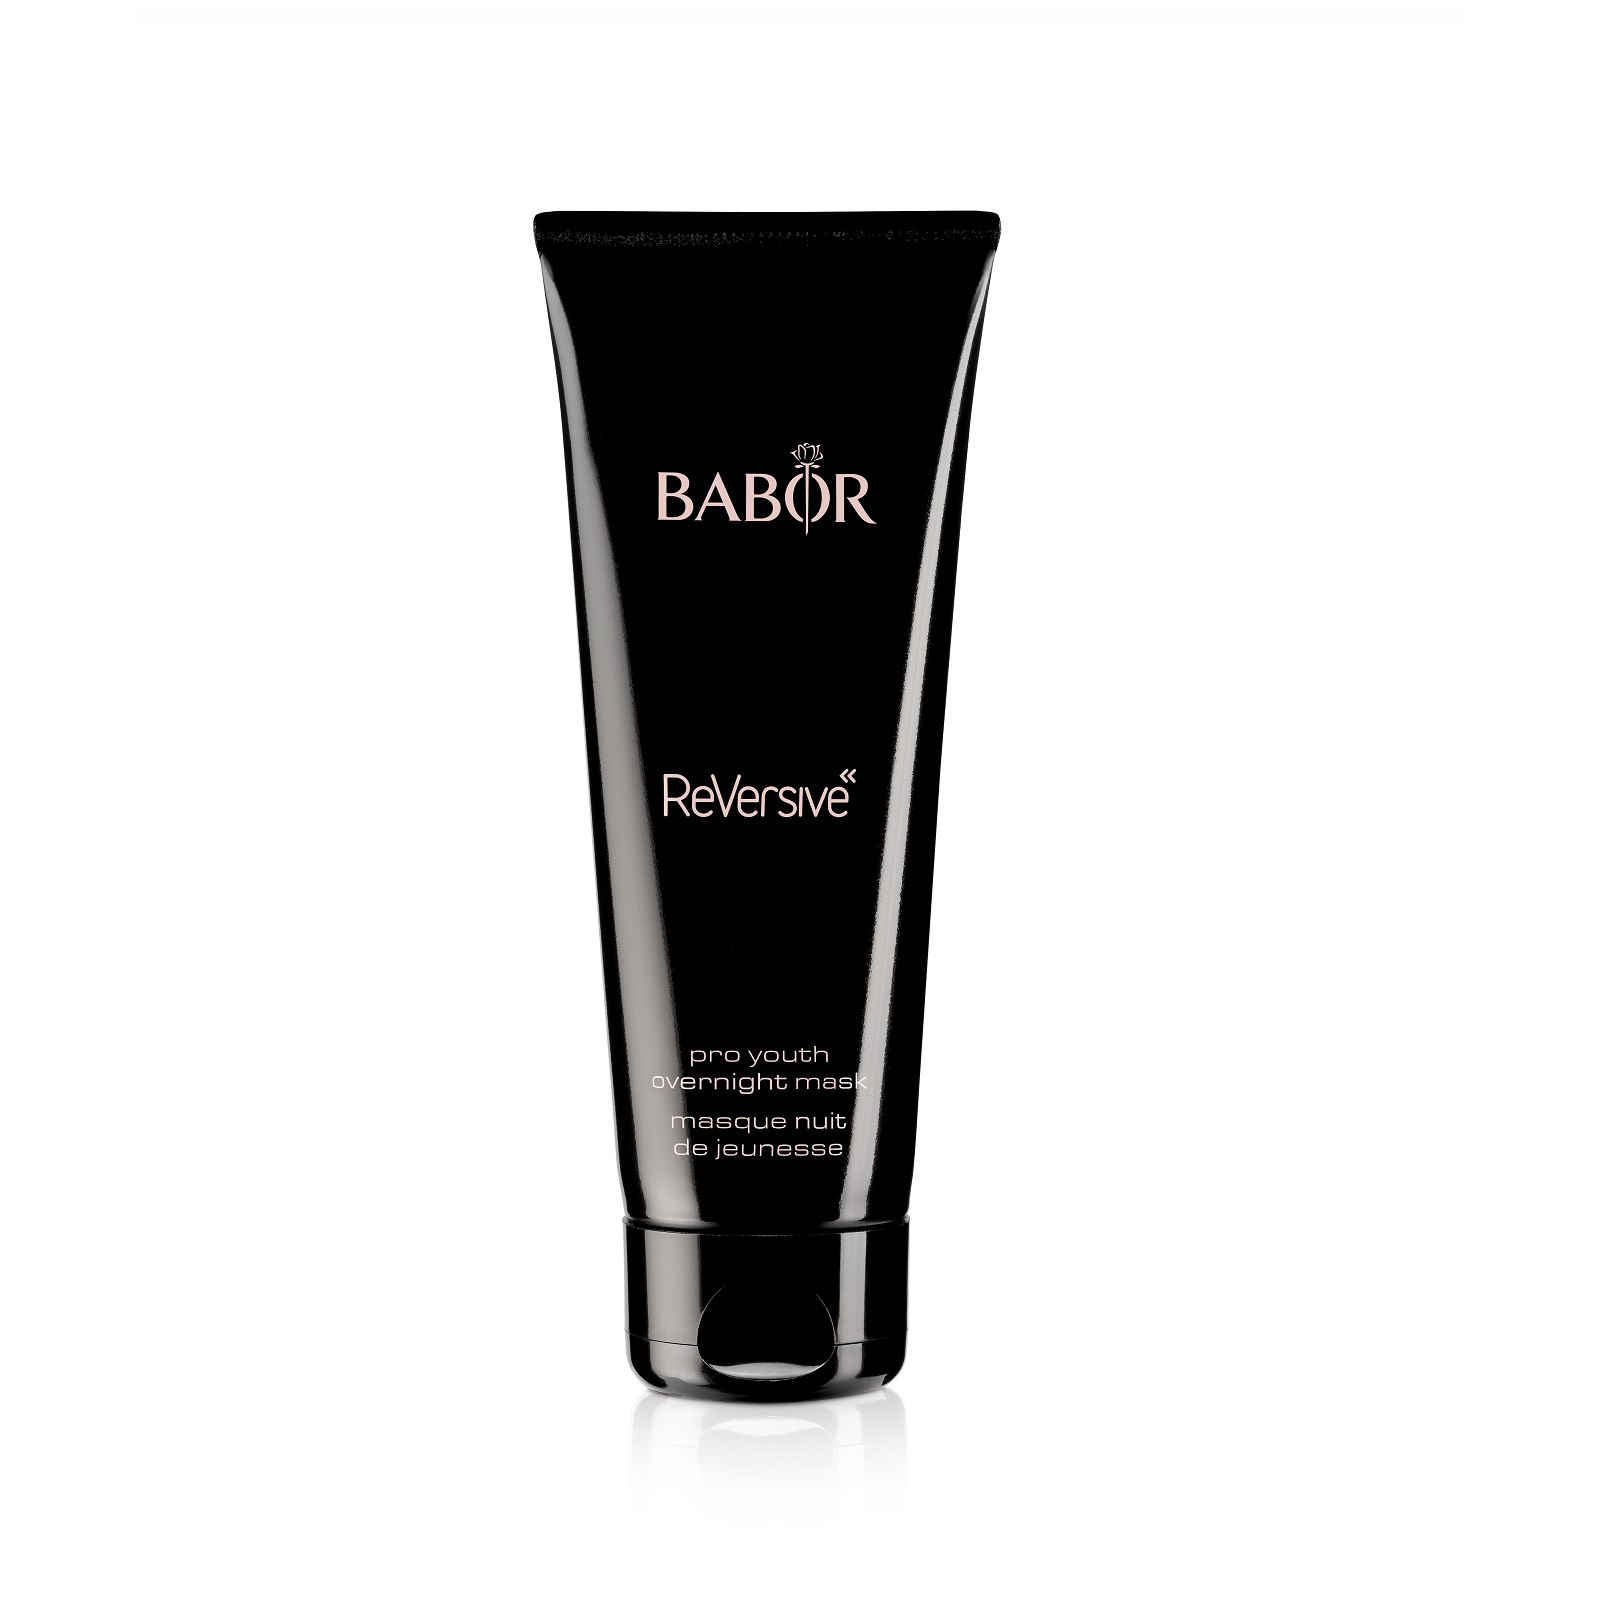 Маска ночная для лица Pro Youth Overnight Mask ReVersive Babor 75ml